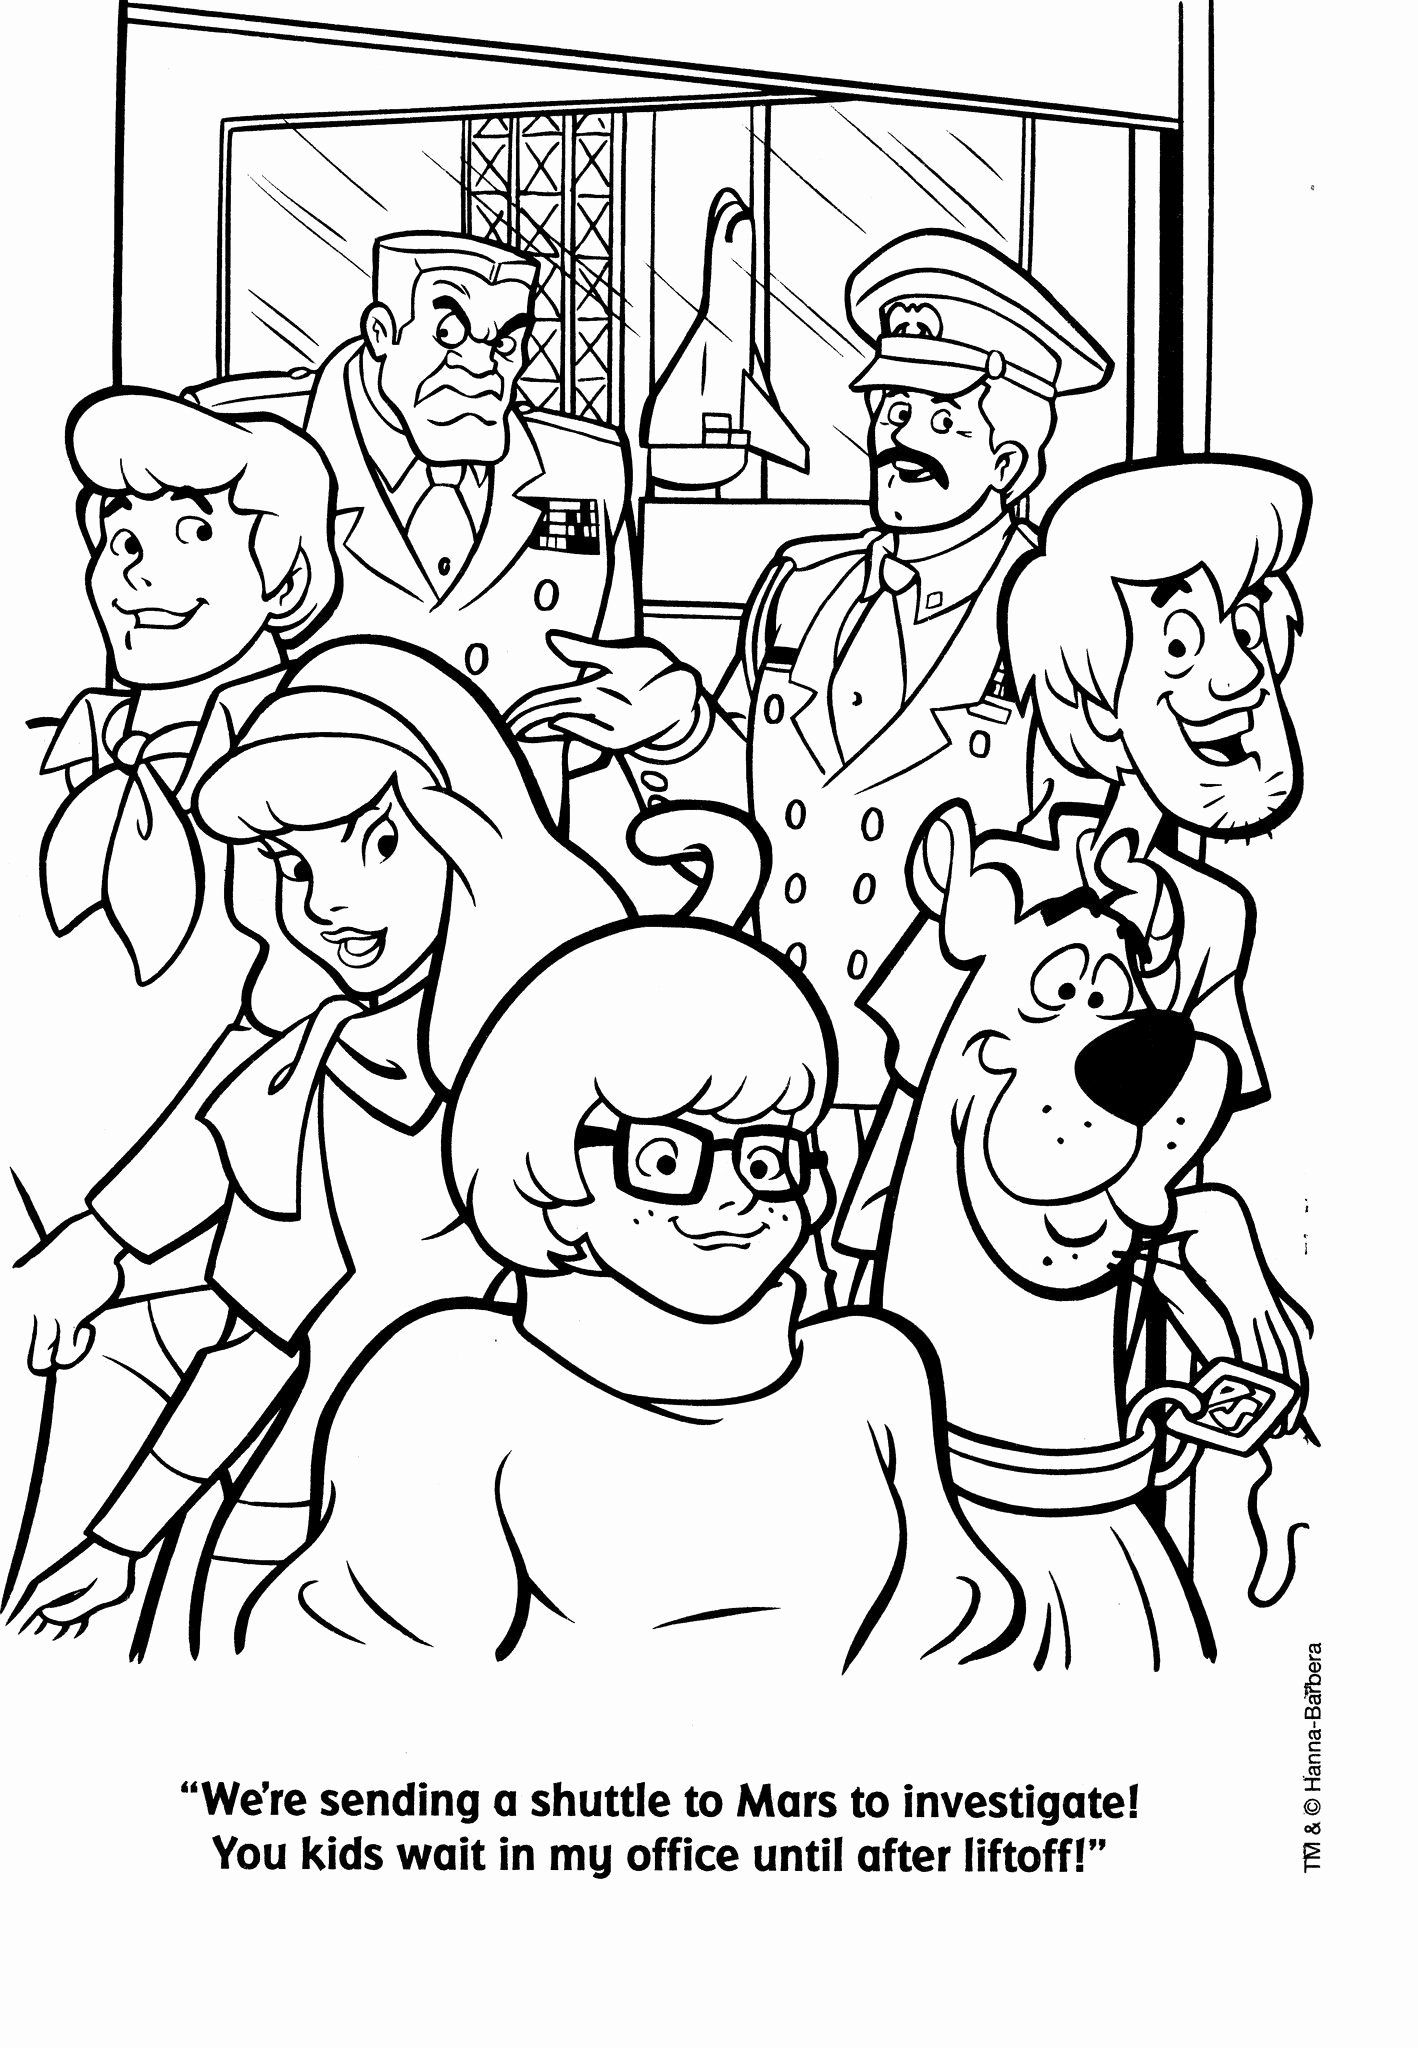 Scooby Doo Coloring Book Beautiful Scooby Doo Coloring Pages In 2020 Monster Coloring Pages Coloring Books Scooby Doo Coloring Pages